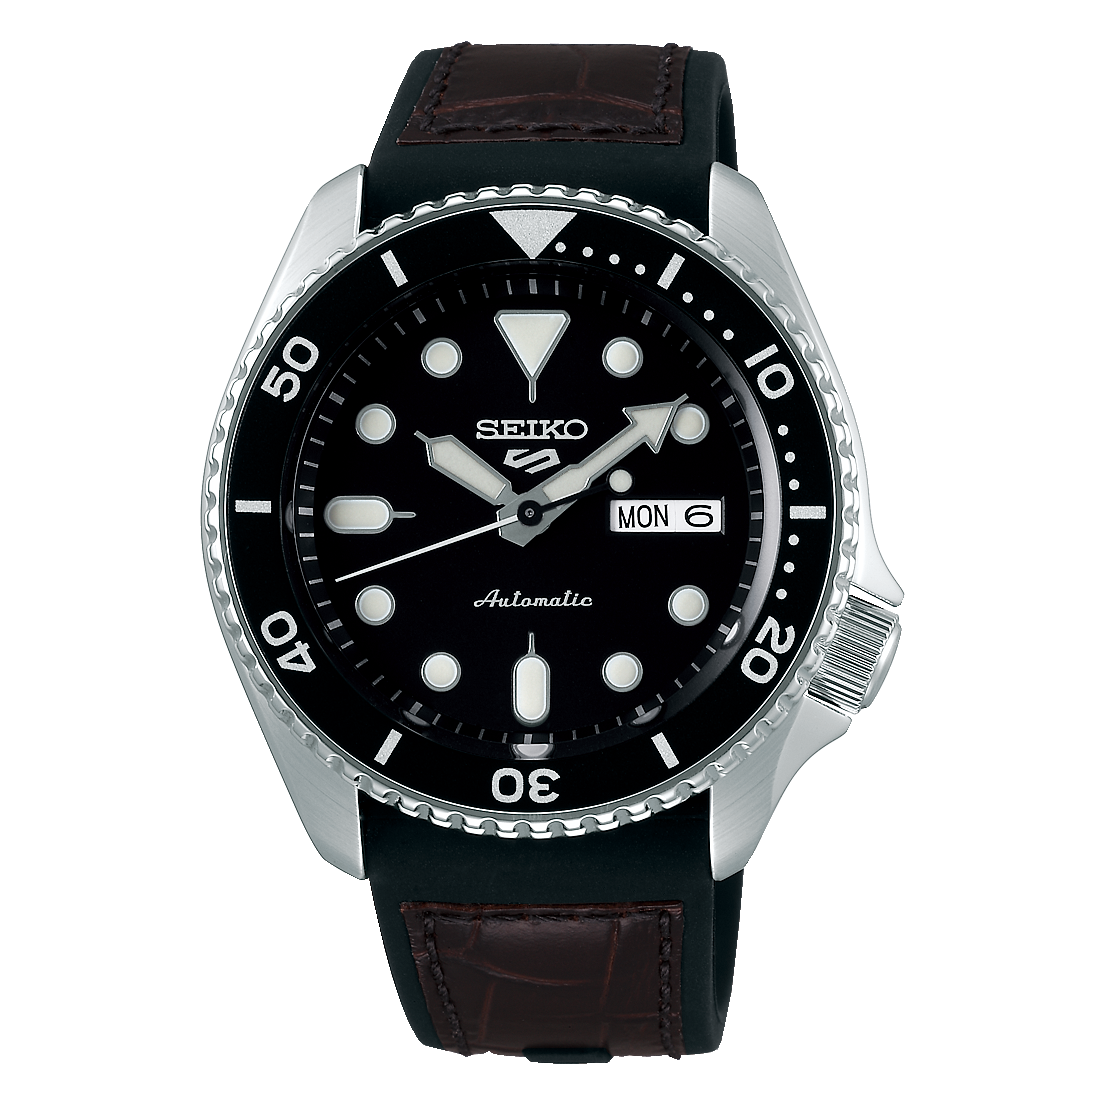 Seiko 5 Sport - Specialist Series With Black Dial